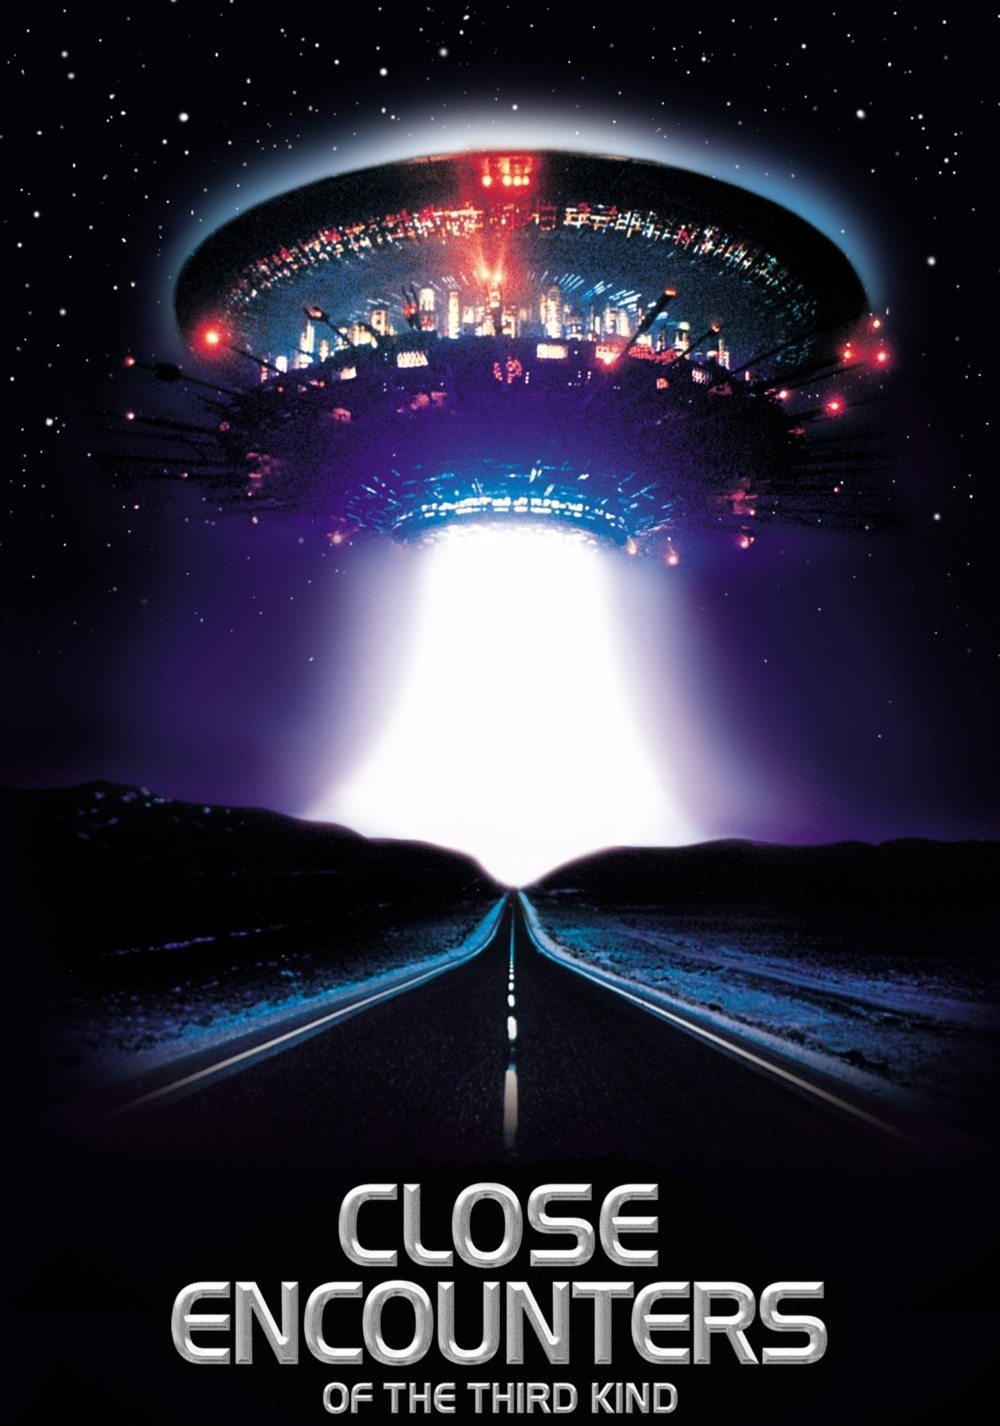 a film review of steven spielbergs close encounters Neary's obsession eventually puts him in contact with others who've had close encounters with alien 30 years of close encounters close encounters of the third kind making steven spielberg directs a monumental film about the ufo experience and what possible contact with other.